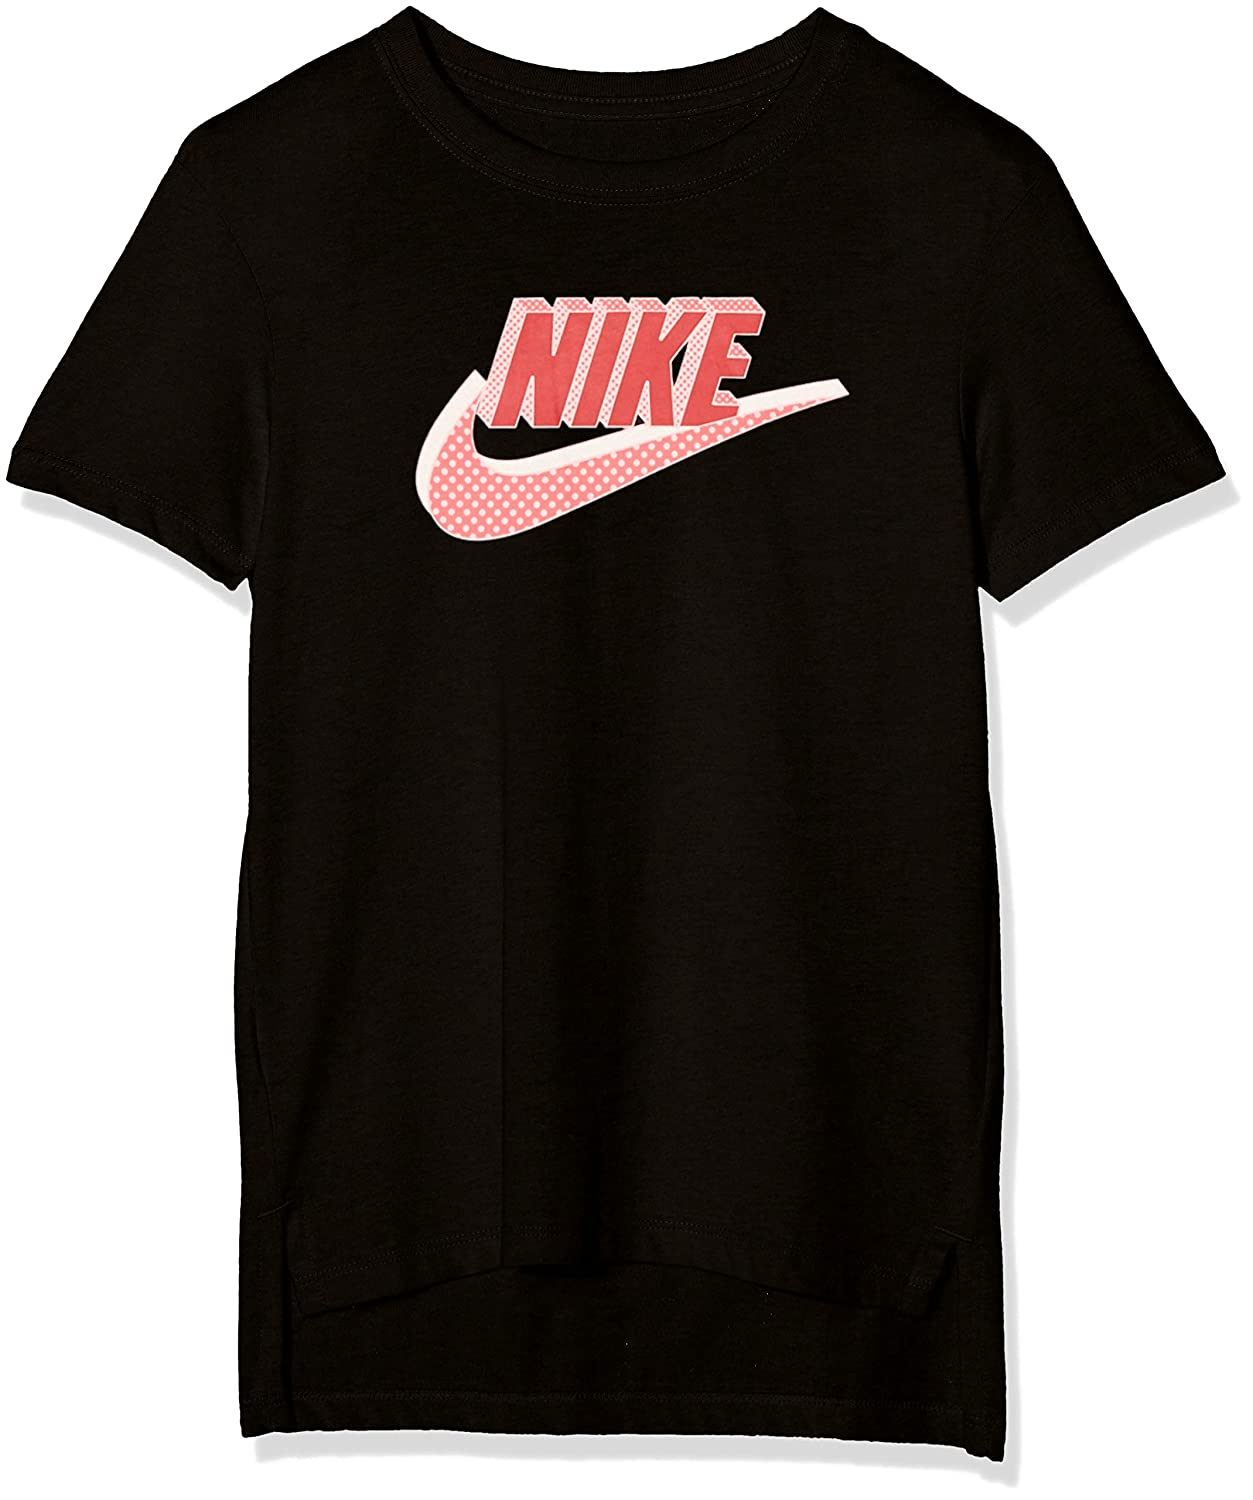 Nike Girls' Hilo Futura T-Shirt